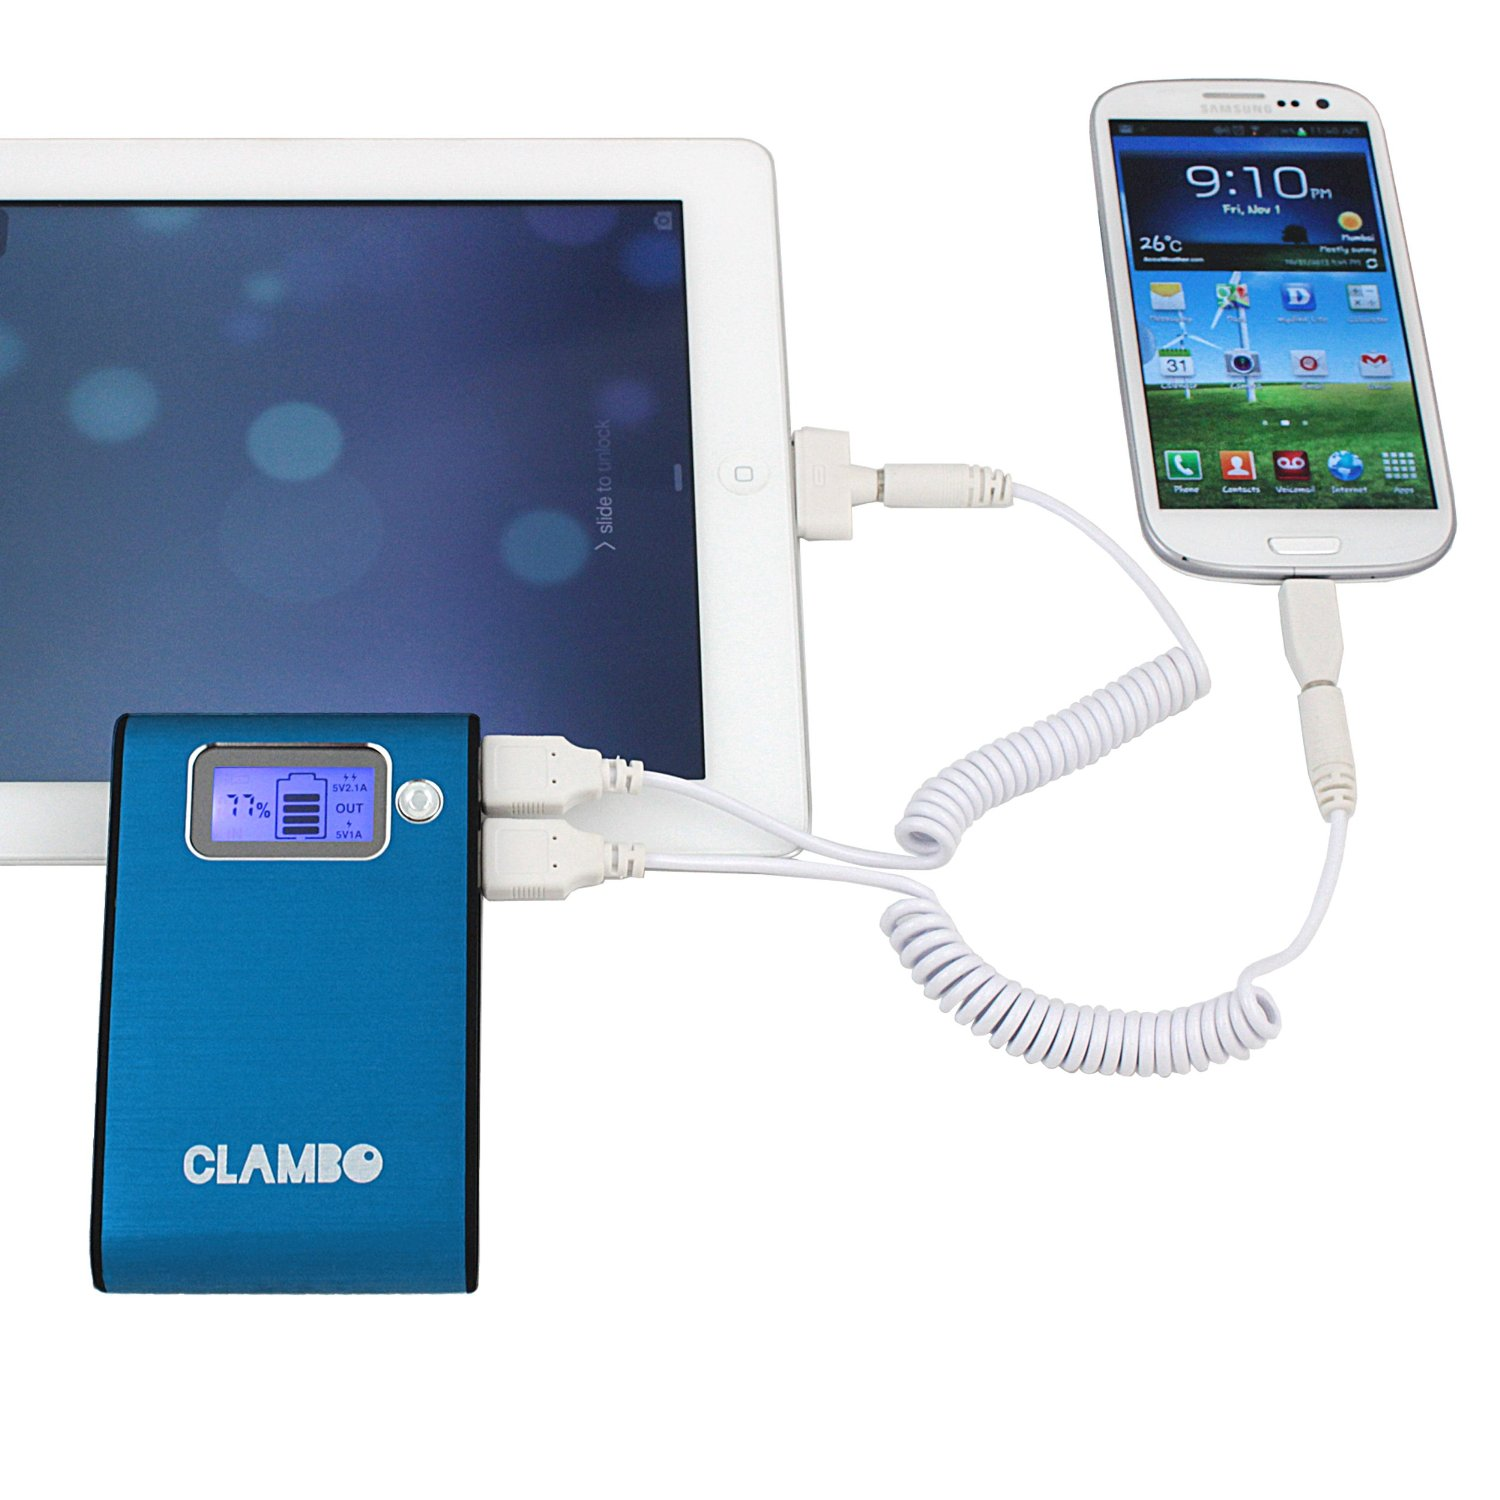 Clambo Power Bank Charging